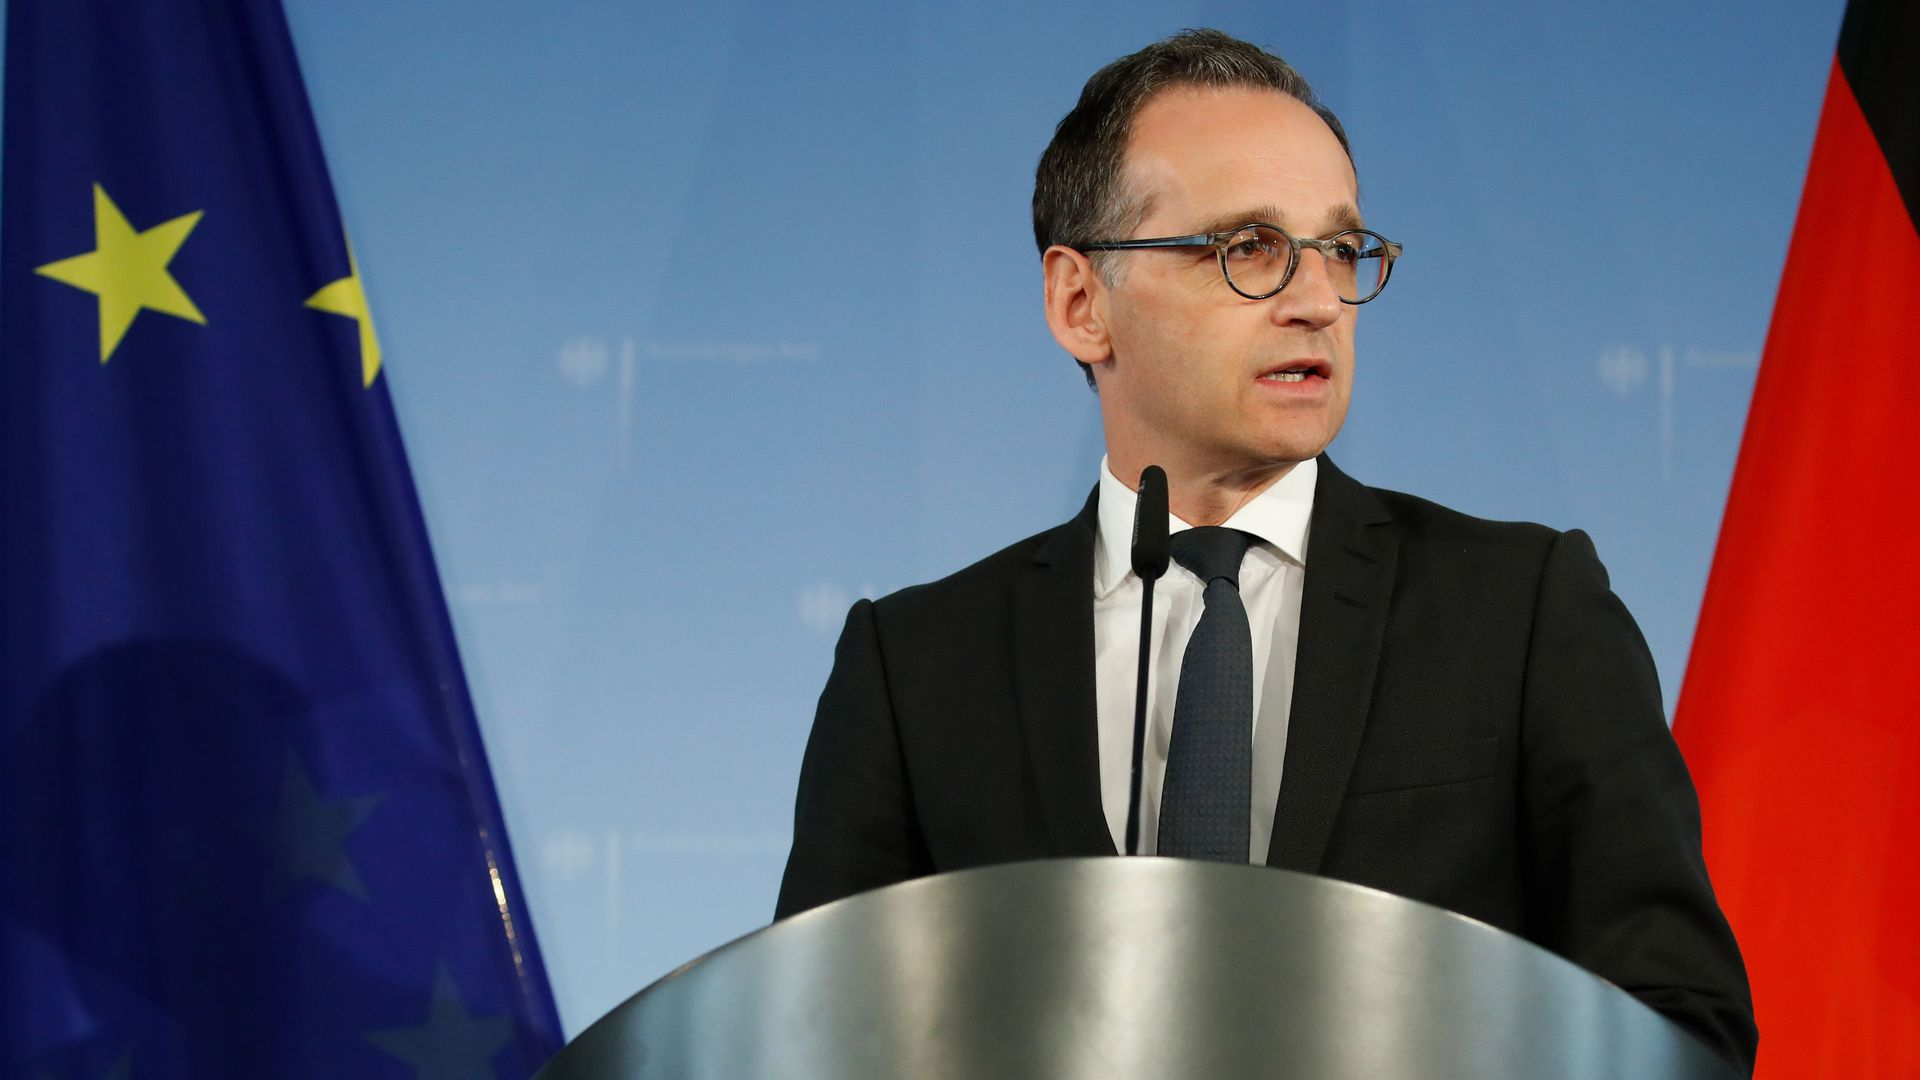 German Foreign Minister Heiko Maas gives a statement on May 9, 2018 in Berlin after President Trump pulled the United States out of a landmark deal curbing Iran's nuclear program.